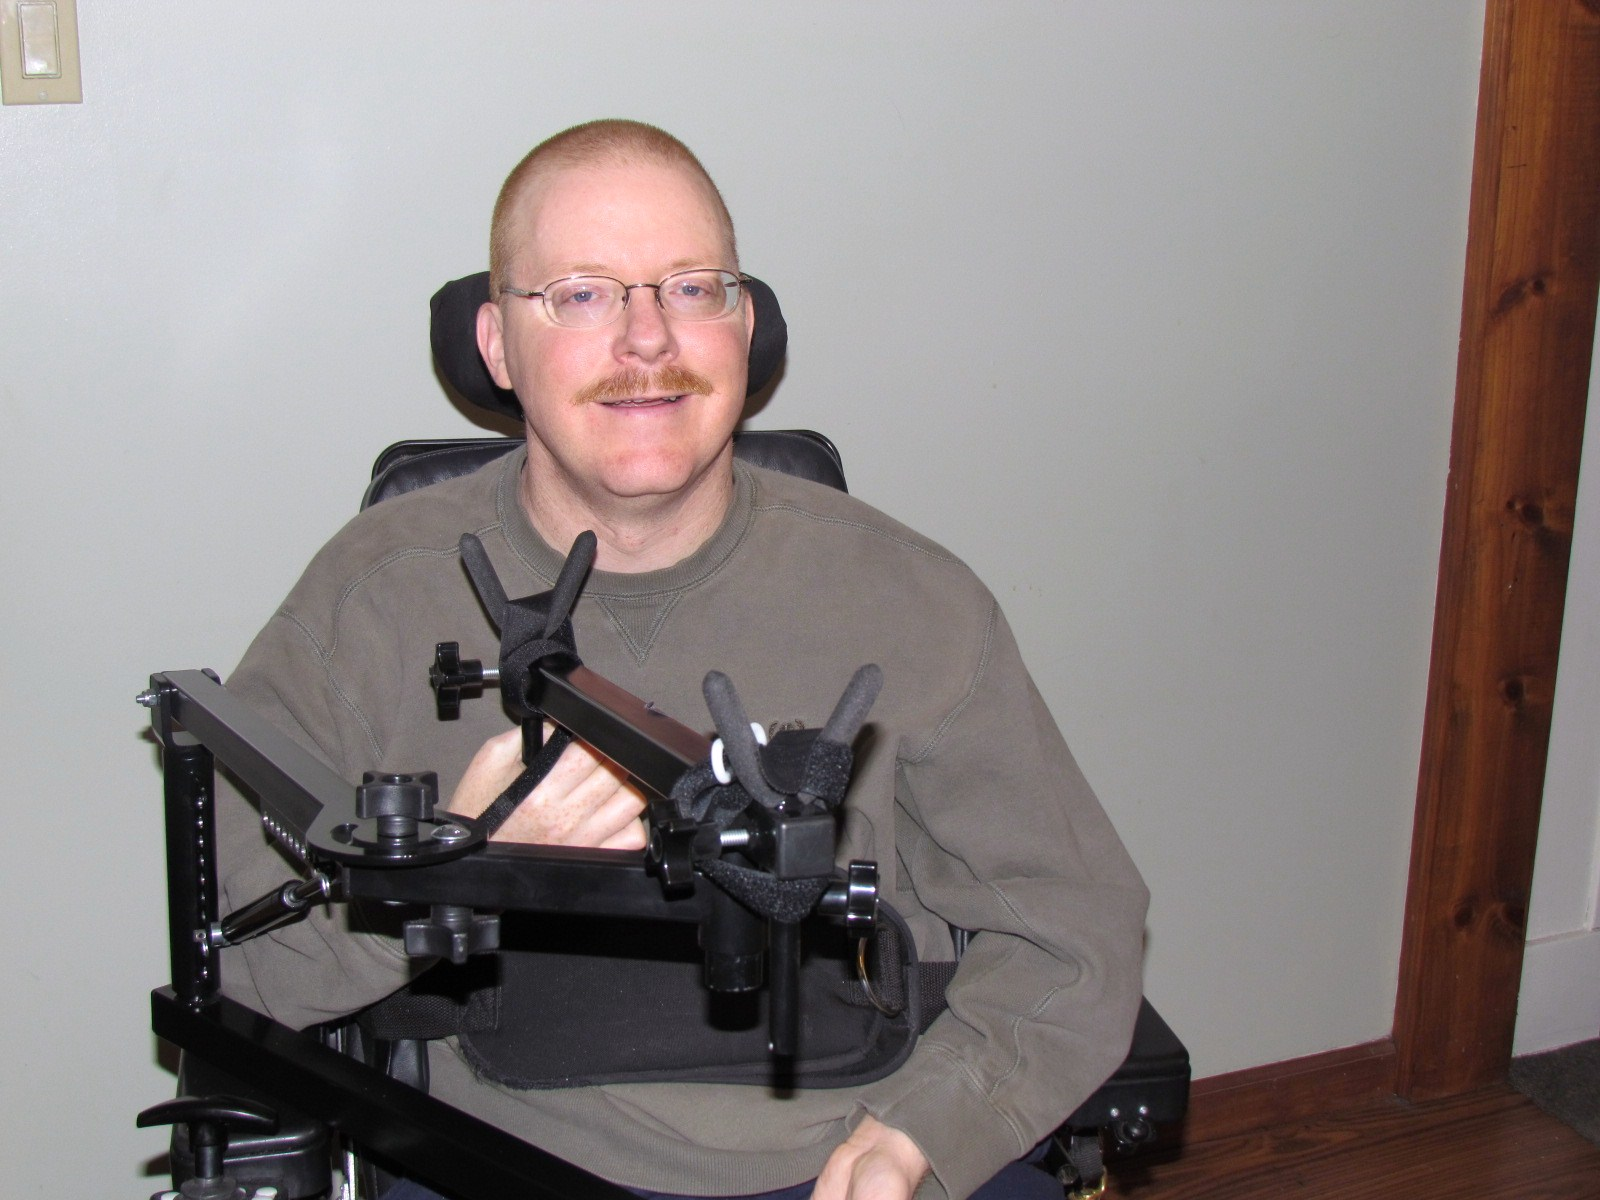 28fec1639e2 I received the new adapted hunting Brace ( LM-100 ) and I thought I would  show you how it looks on my wheelchair. I have not had the opportunity to  take it ...